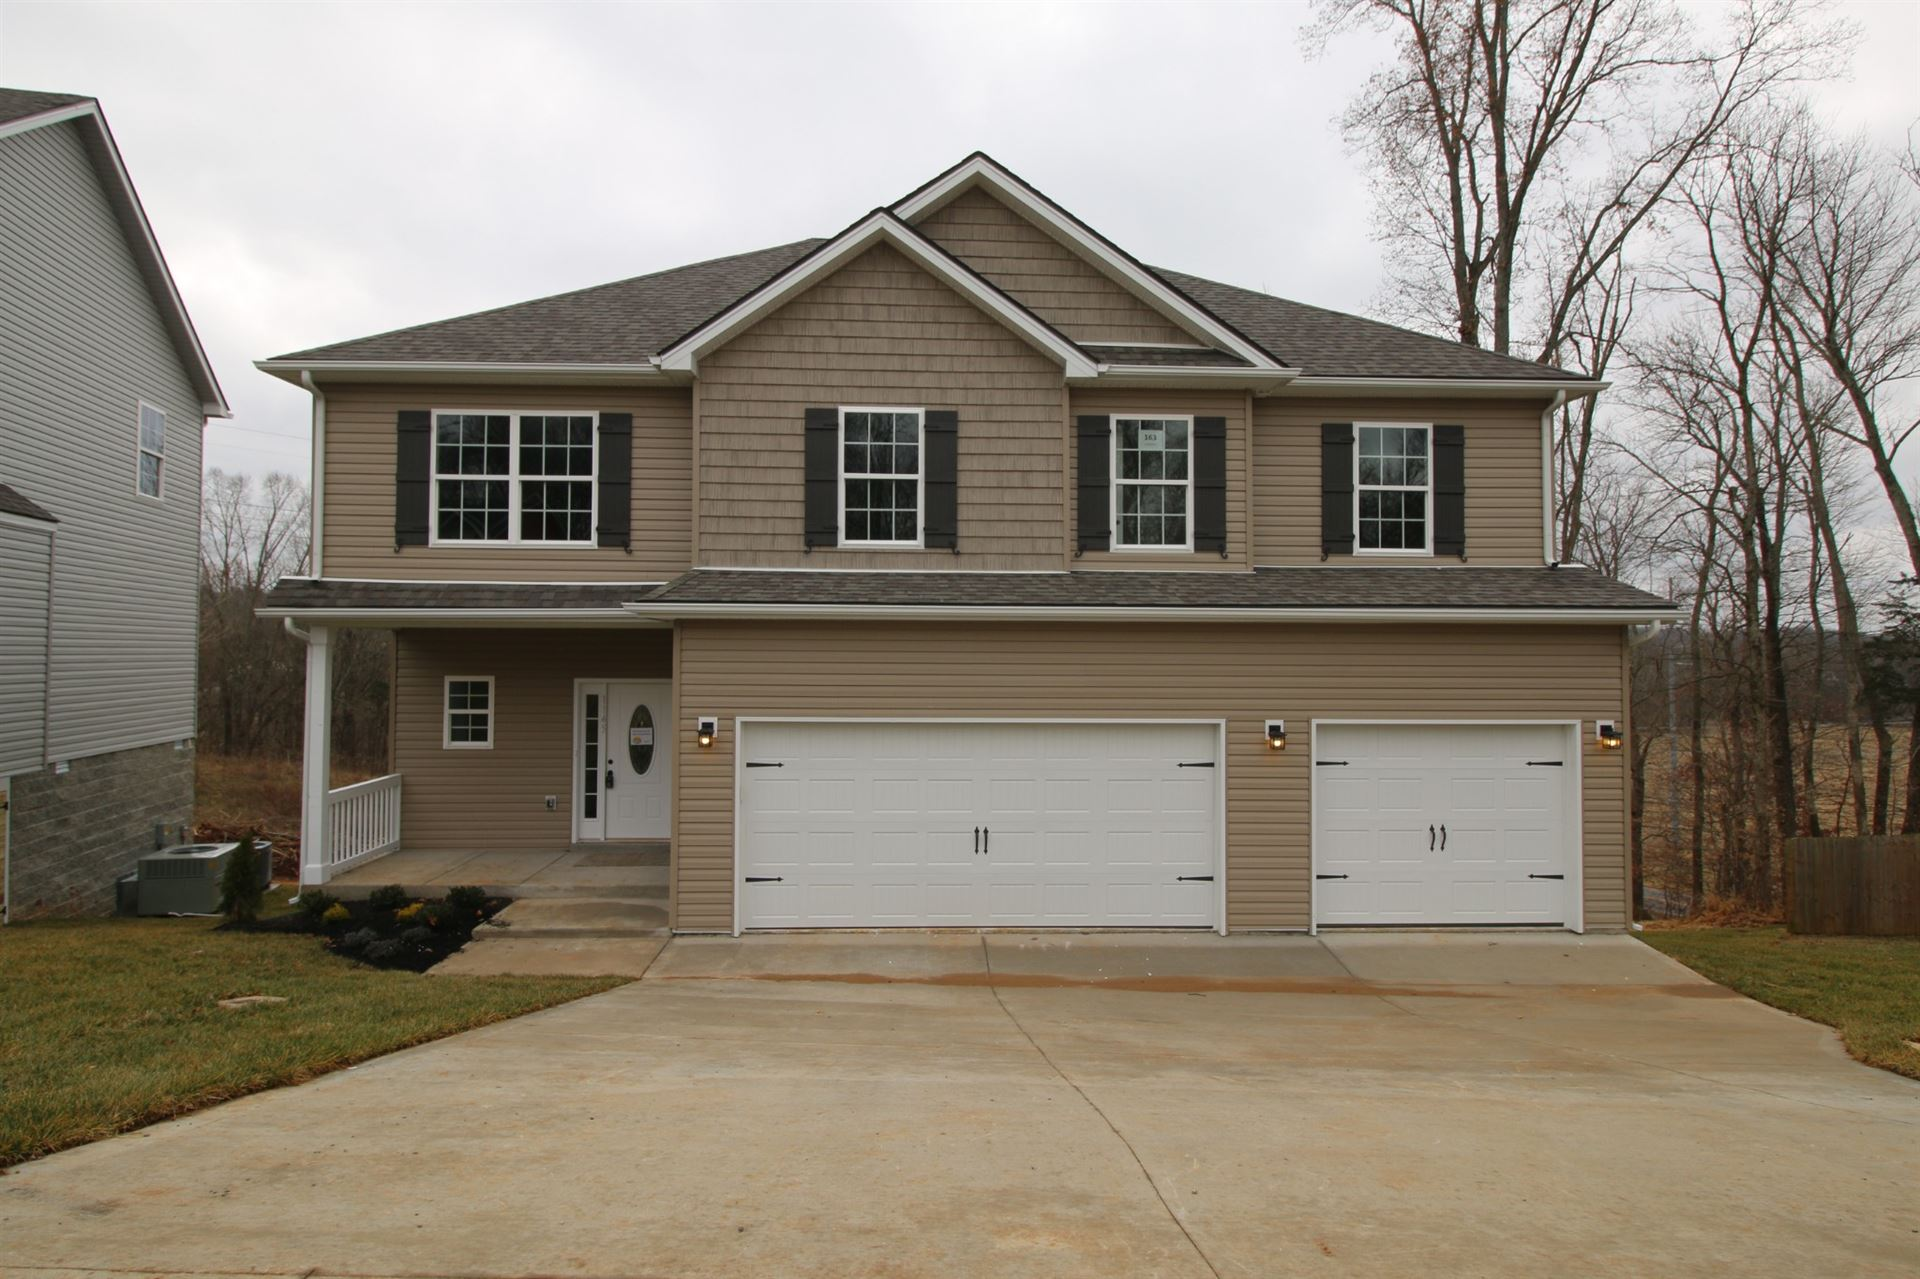 163 Eagles Bluff, Clarksville, TN 37040 - MLS#: 2189926